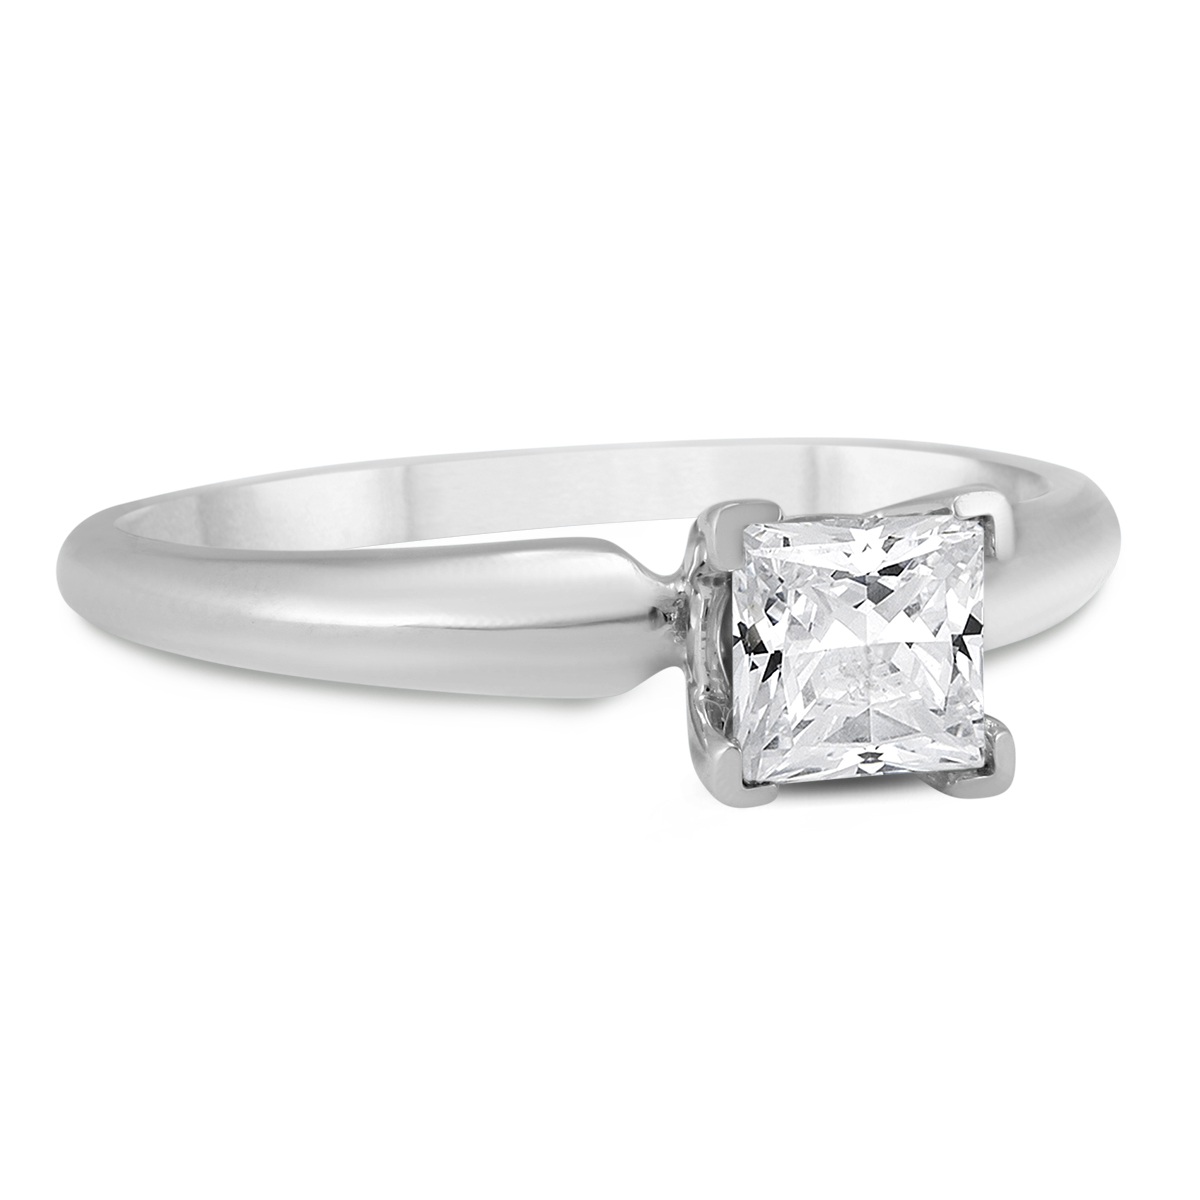 Almost 1/2 Carat Princess Diamond Solitaire Ring